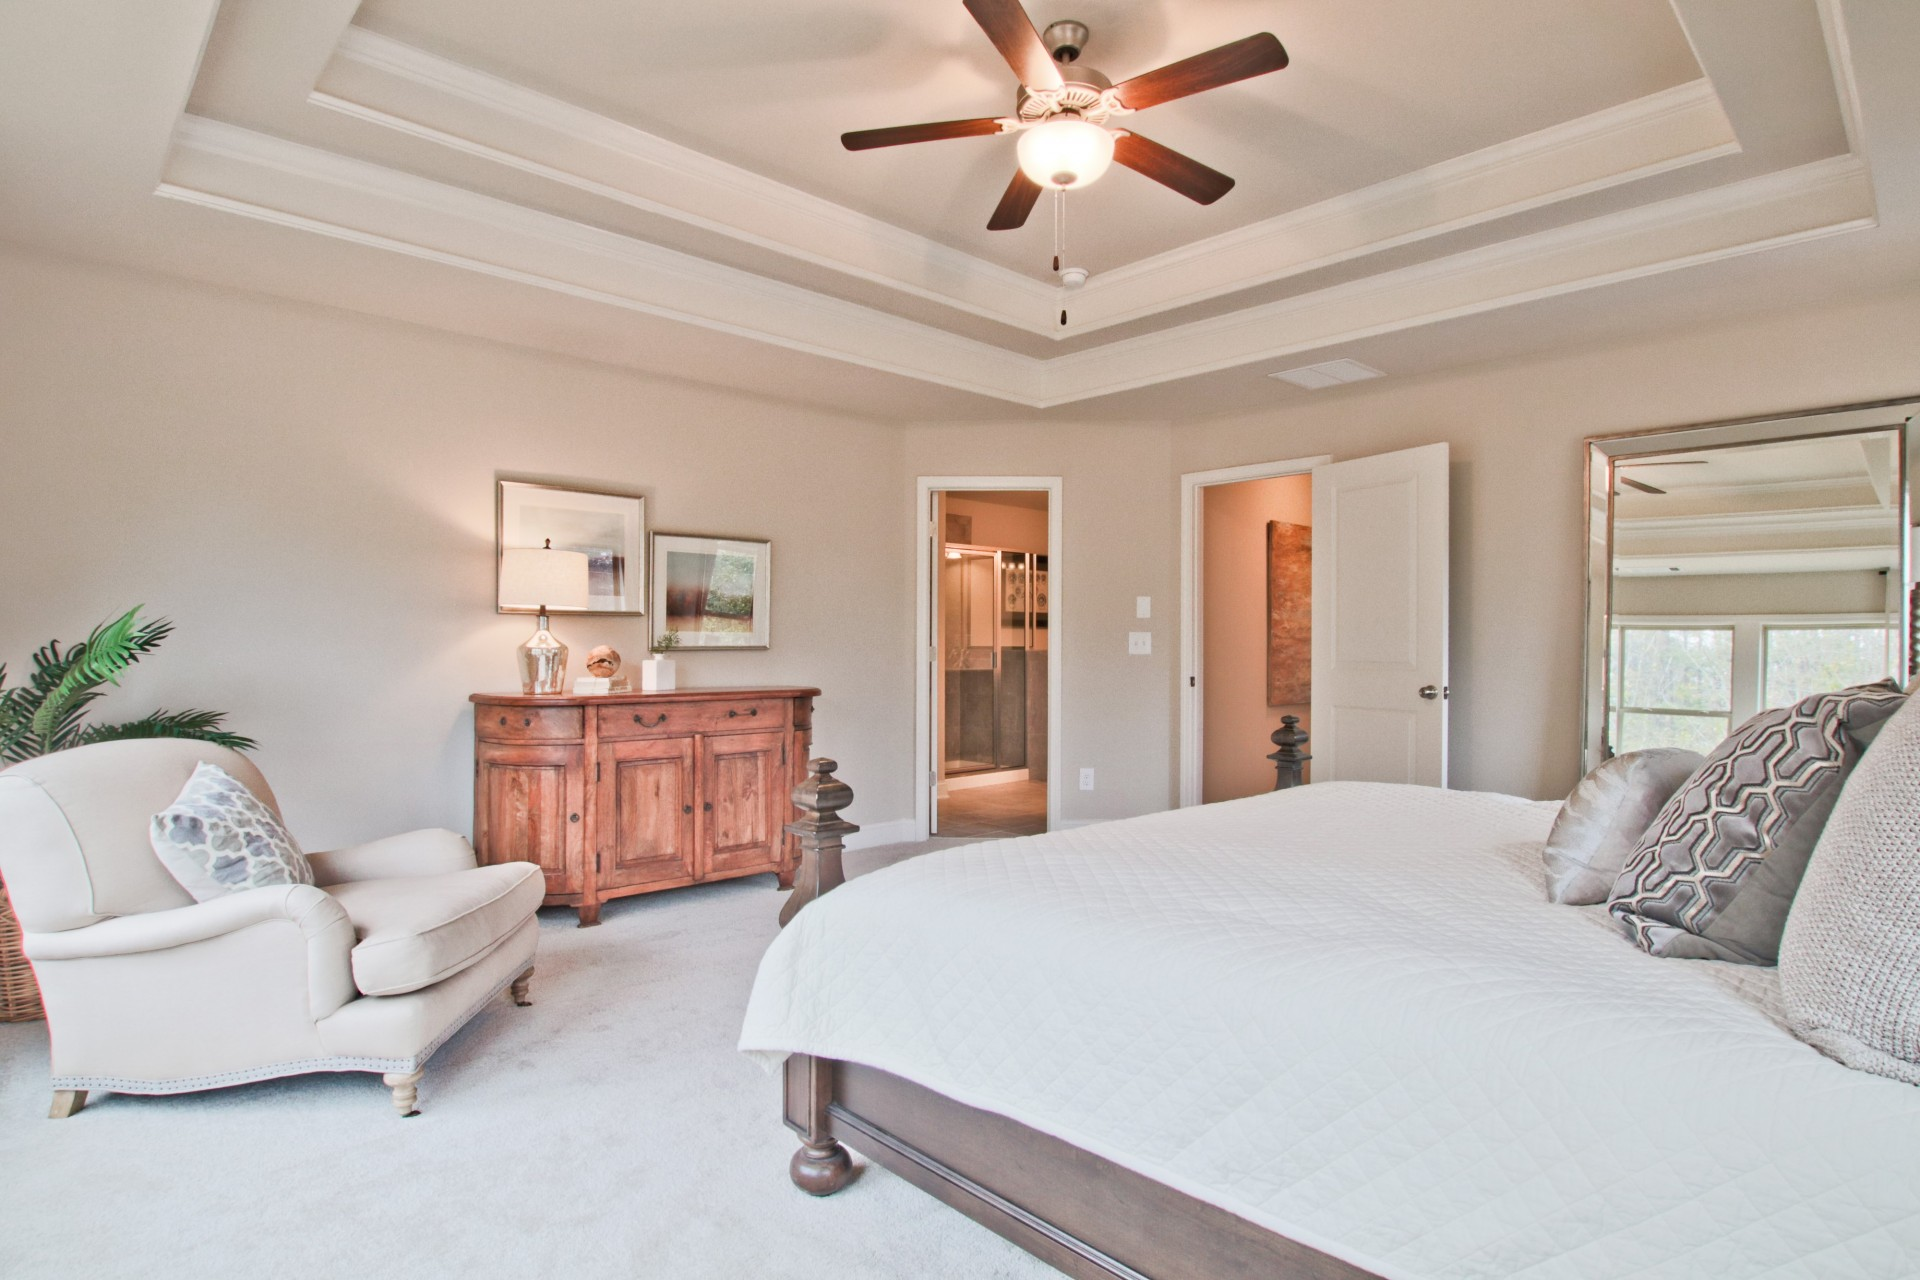 amberly mill home south communities a lennar company. Black Bedroom Furniture Sets. Home Design Ideas